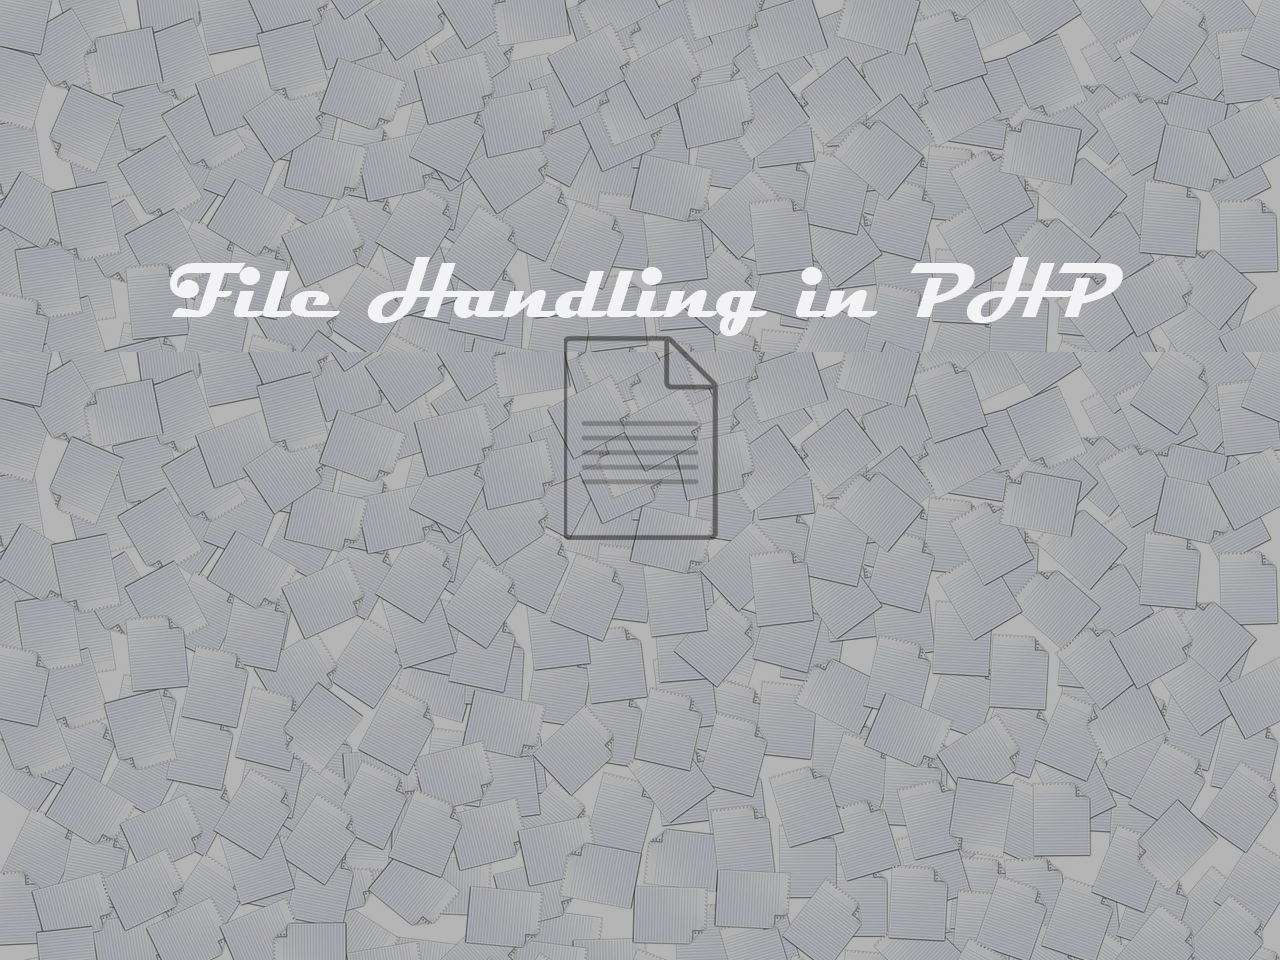 File handling in PHP with Source code